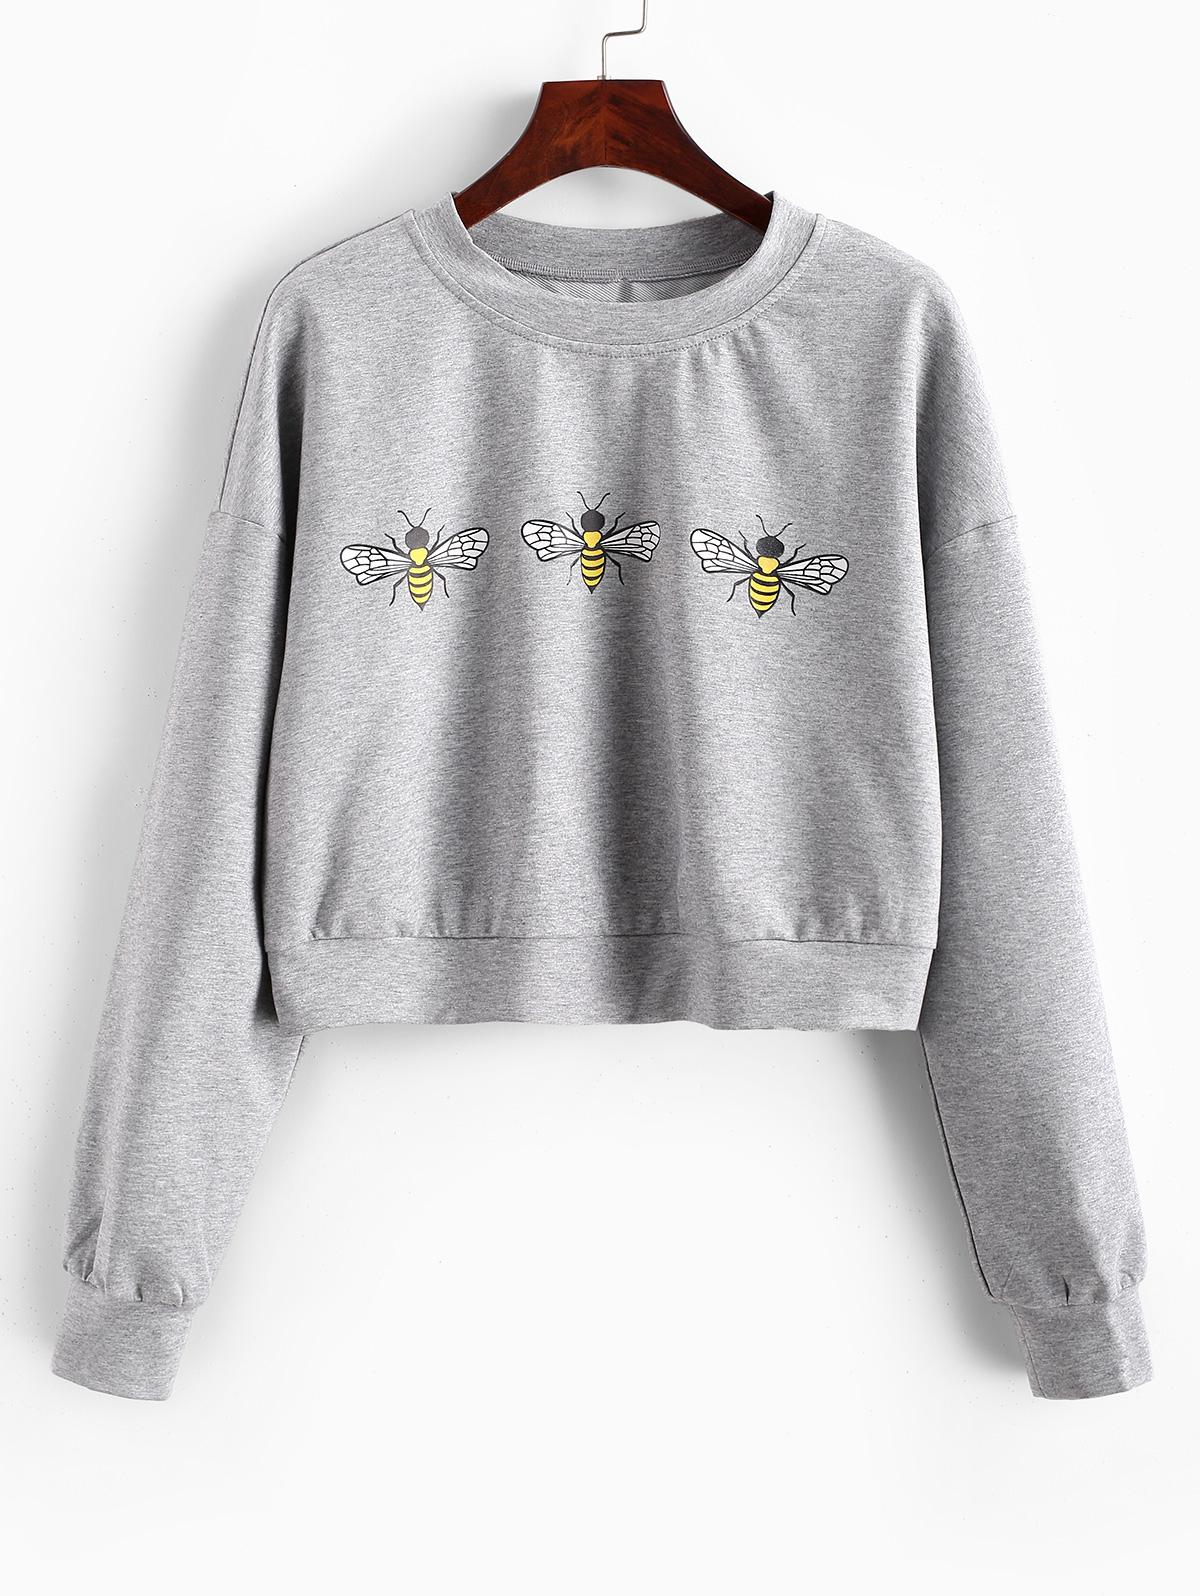 ZAFUL Bee Graphic Cropped Sweatshirt фото